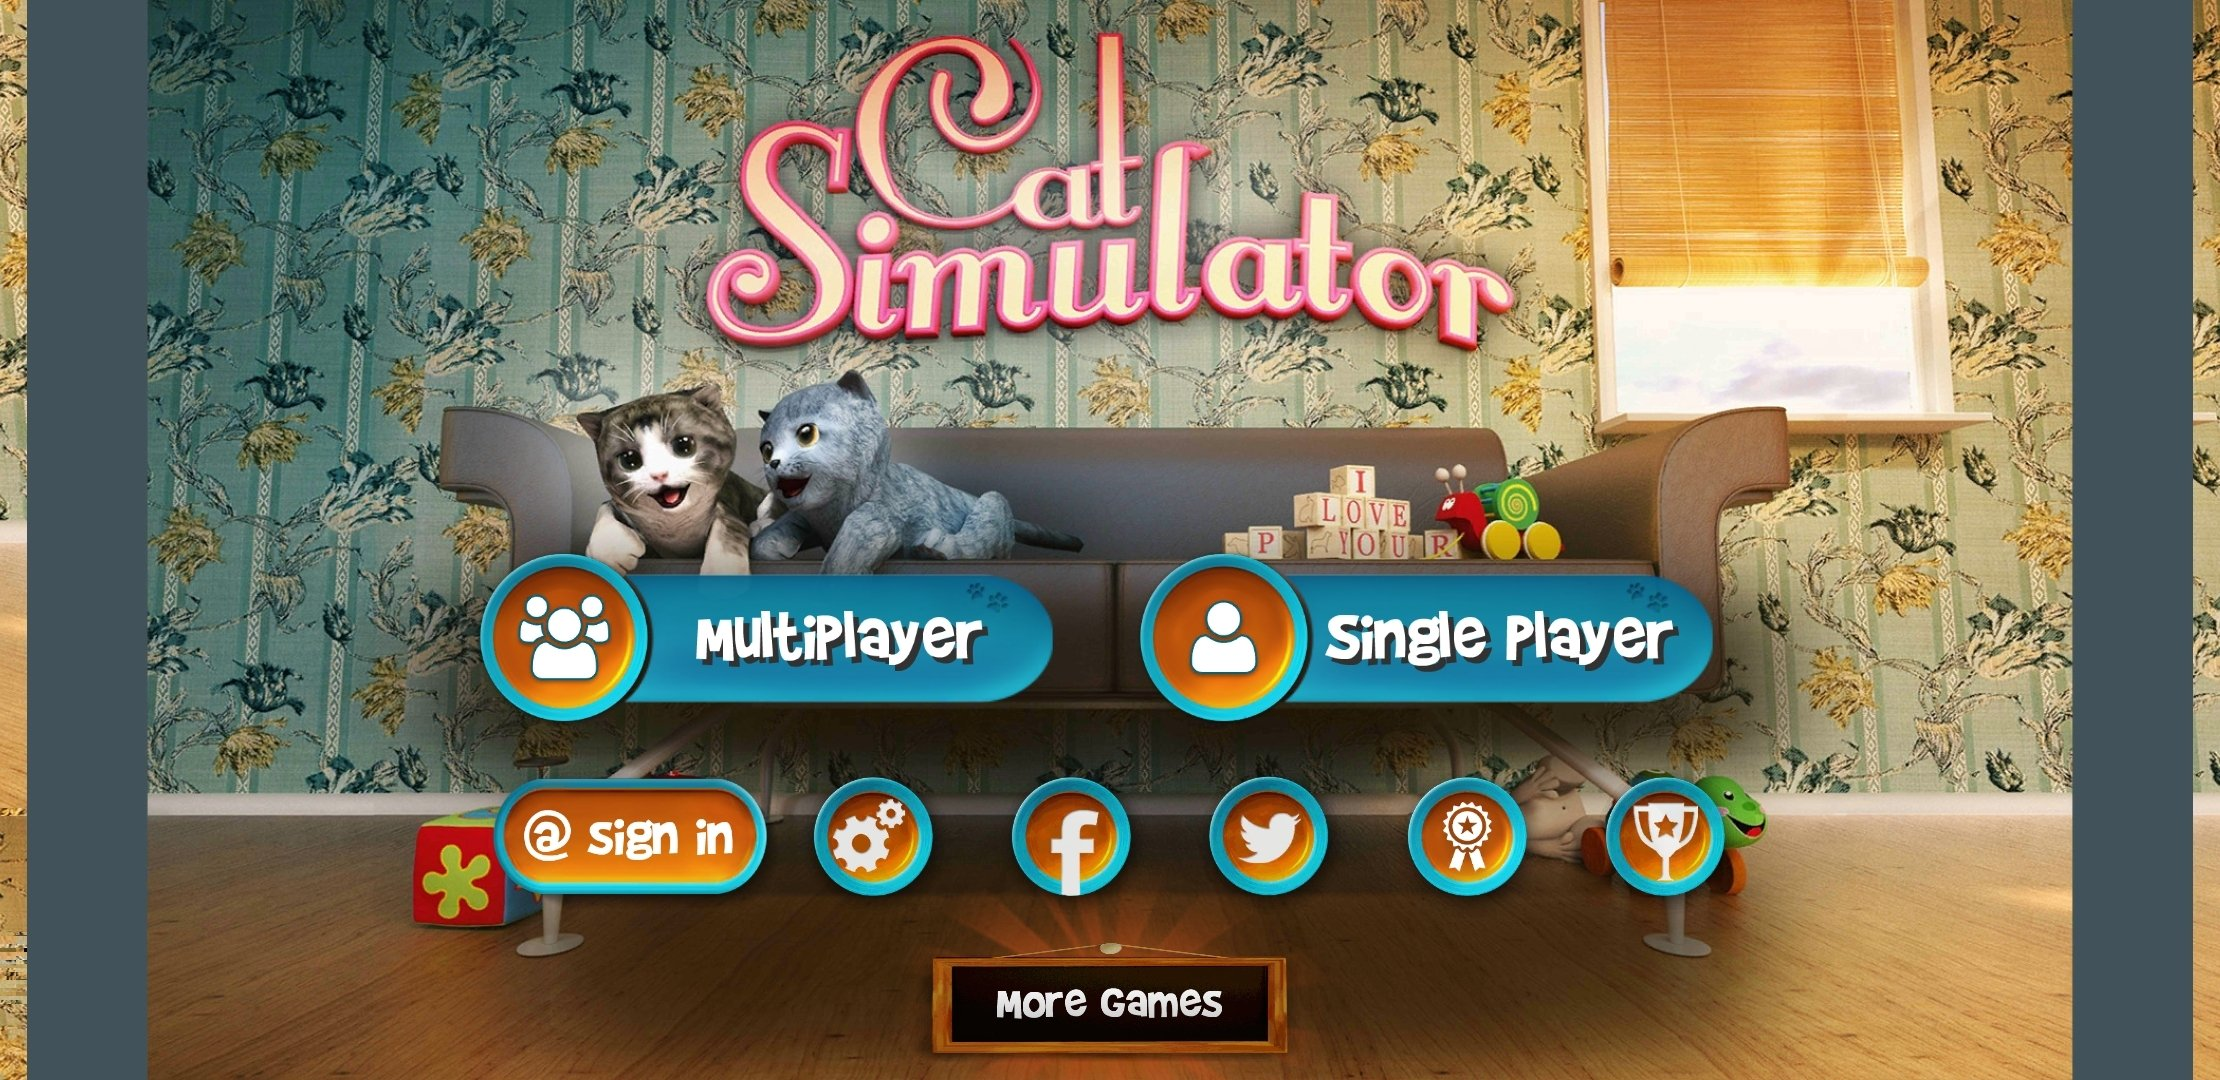 Cat Simulator Android image 5